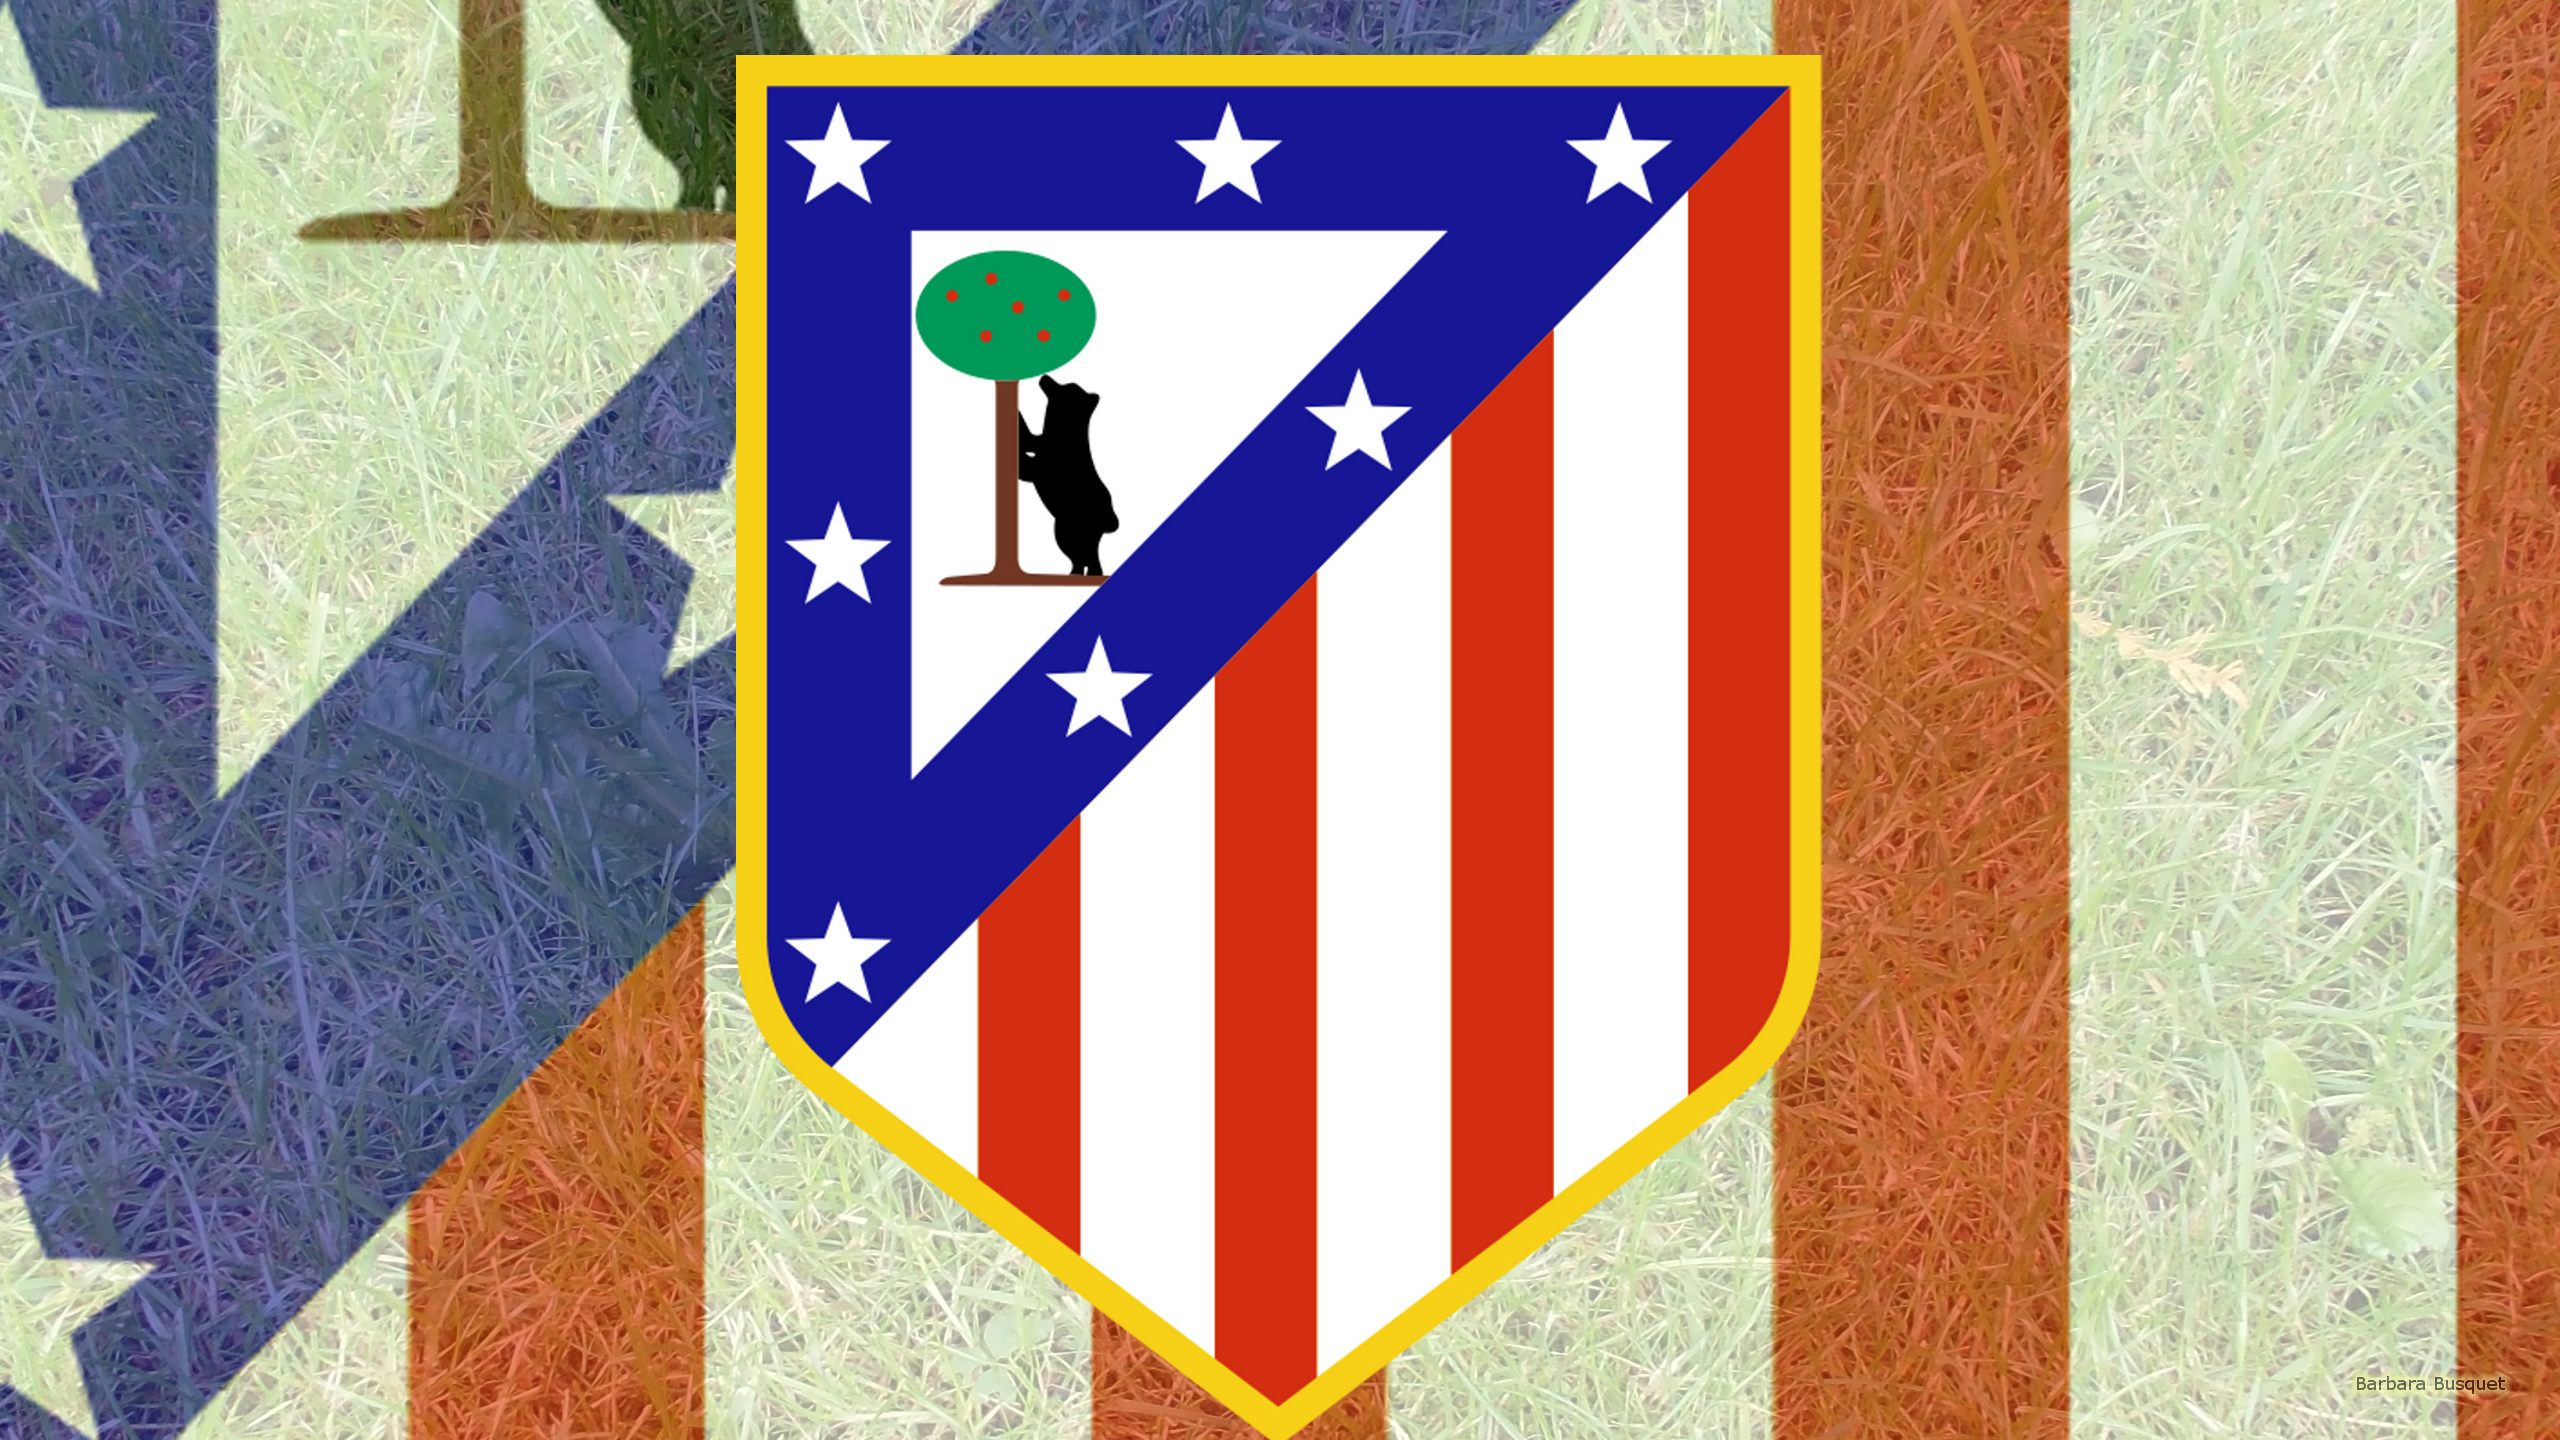 Fall Wallpaper For Laptop Atletico Madrid Barbaras Hd Wallpapers